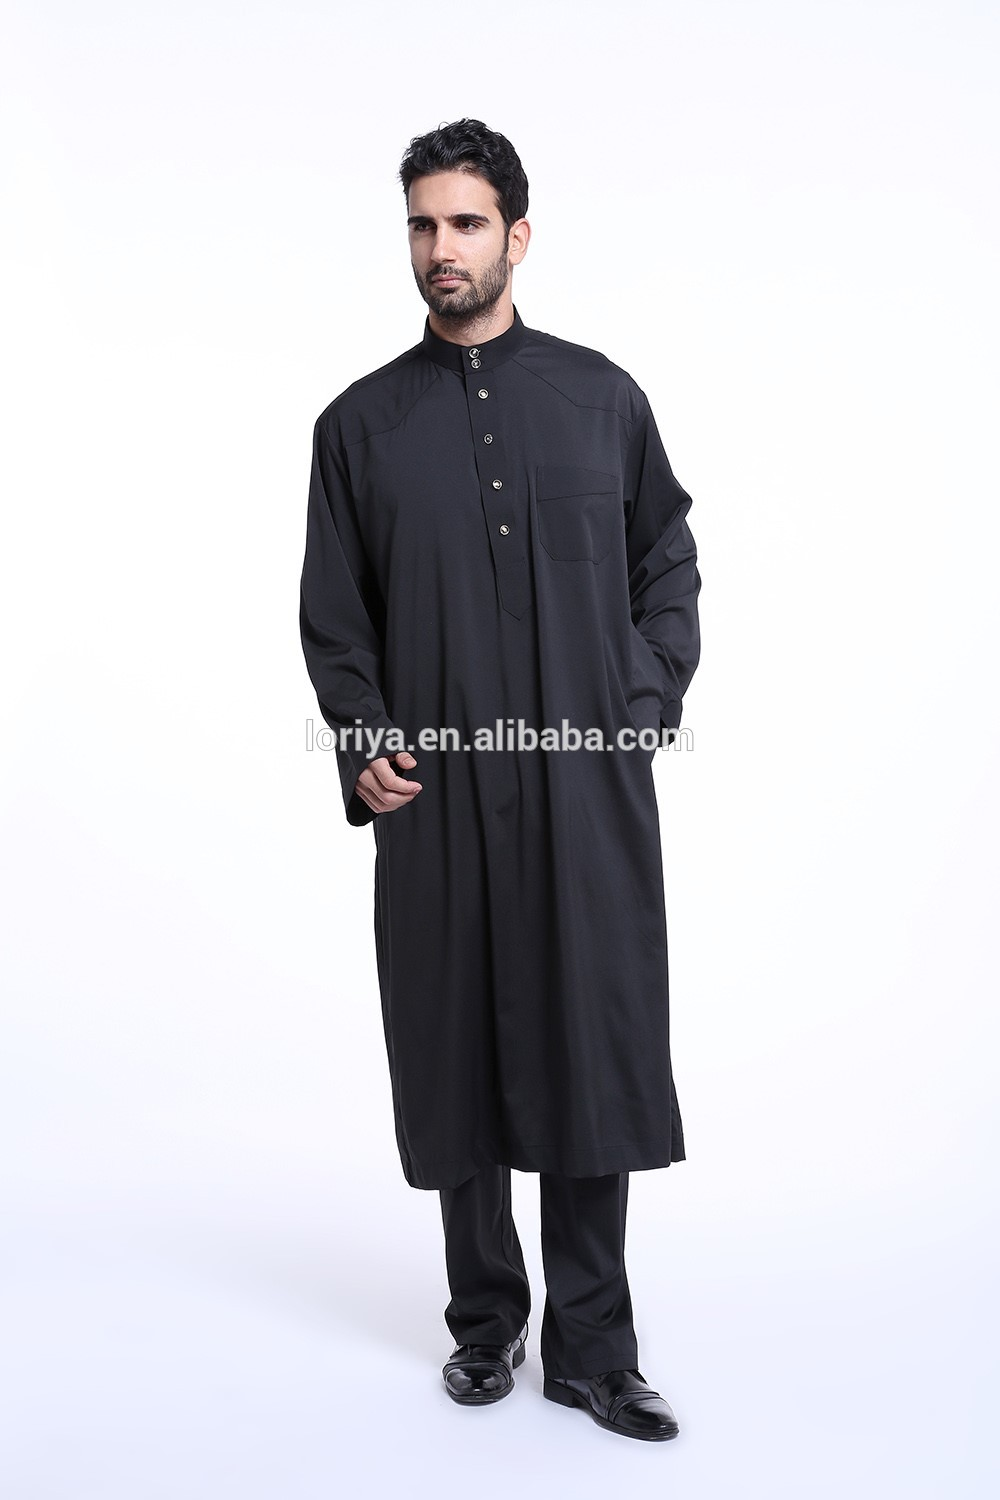 Popular men arab muslim dress new style islamic clothing men's abaya